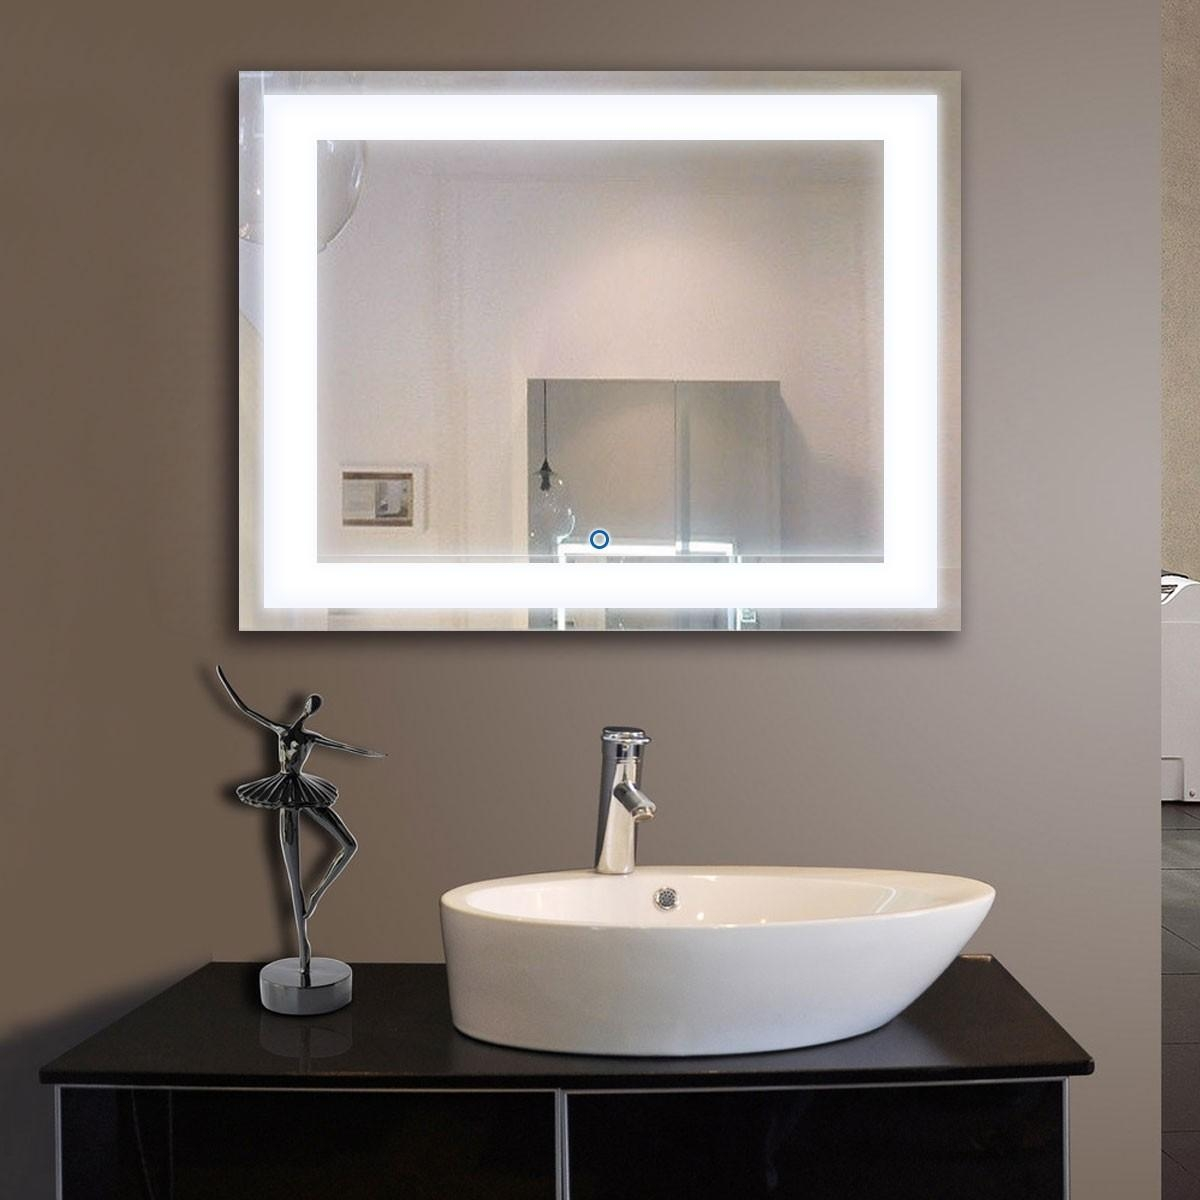 Amazing Hotel Bathroom Mirrors For Sqale Liquidators 20 With Hotel Intended For Hotel Mirrors (Image 5 of 20)